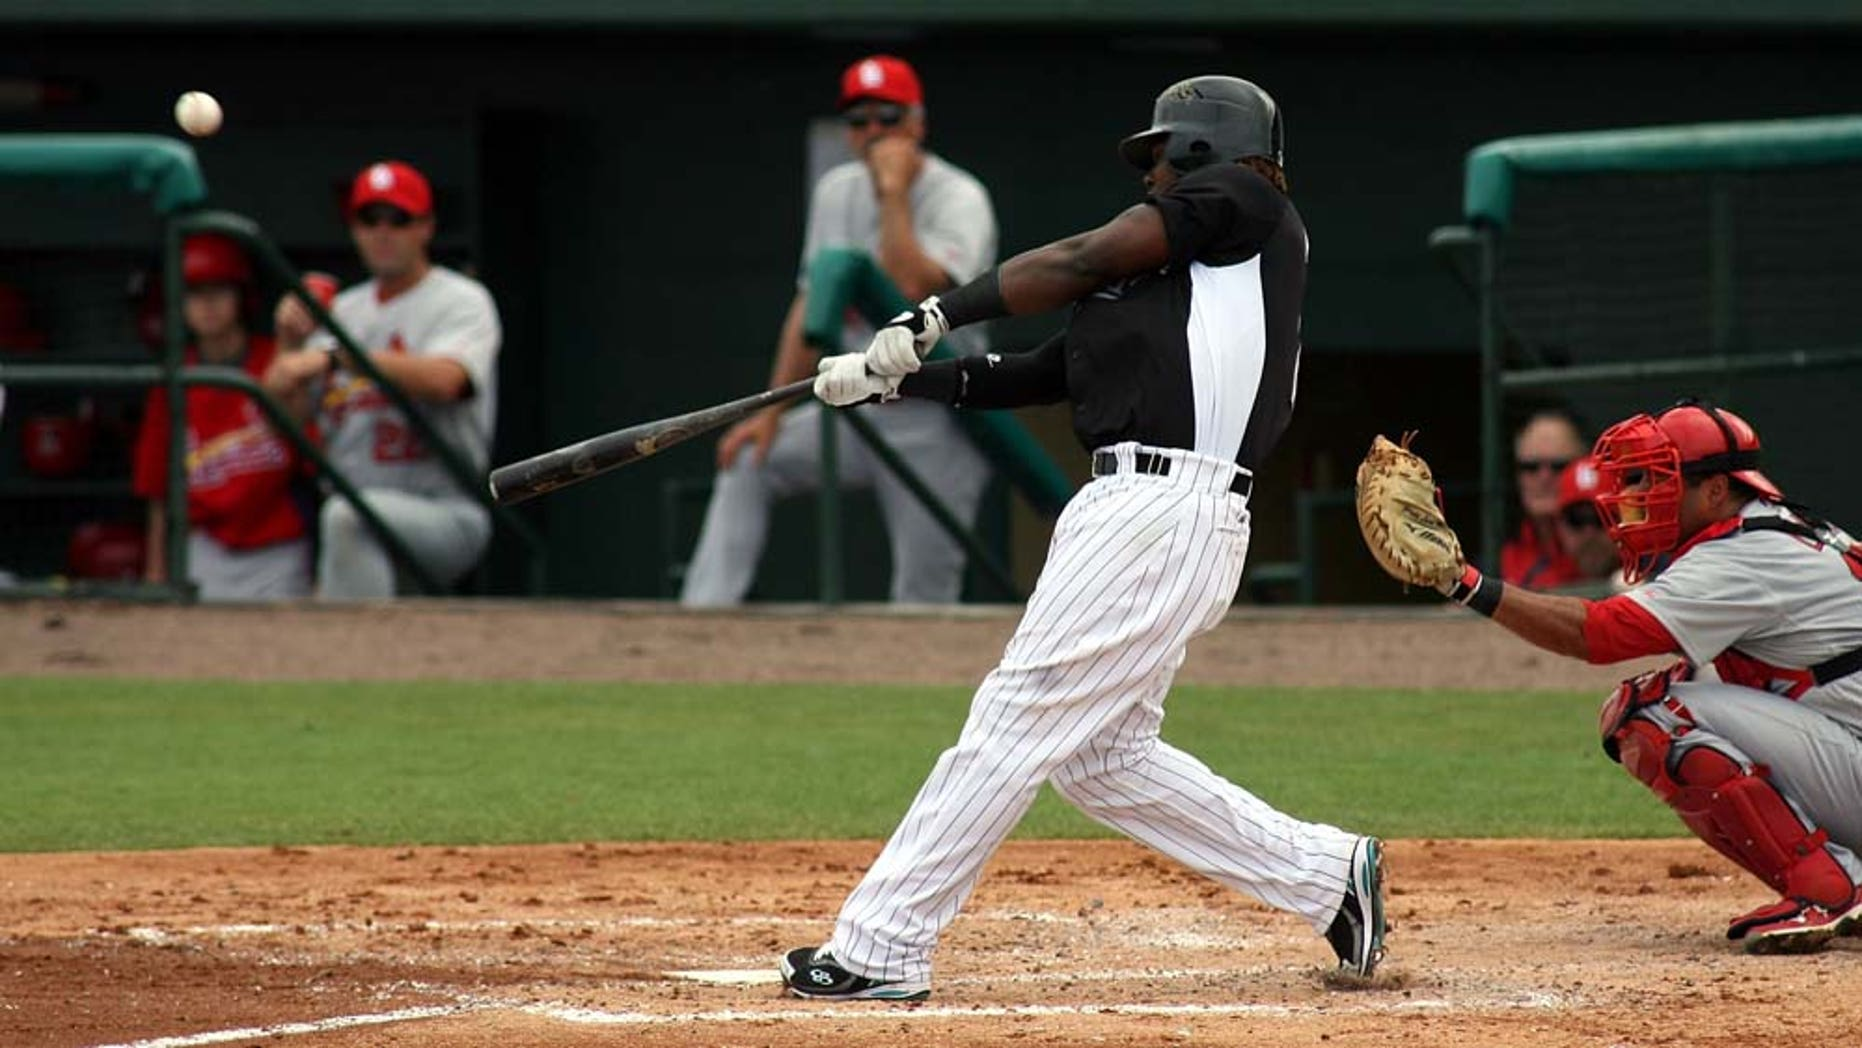 JUPITER, FL - MARCH 06:  Hanley Ramirez #2 of the Florida Marlins bats against the St. Louis Cardinals at Roger Dean Stadium on March 6, 2011 in Jupiter, Florida.  (Photo by Marc Serota/Getty Images)